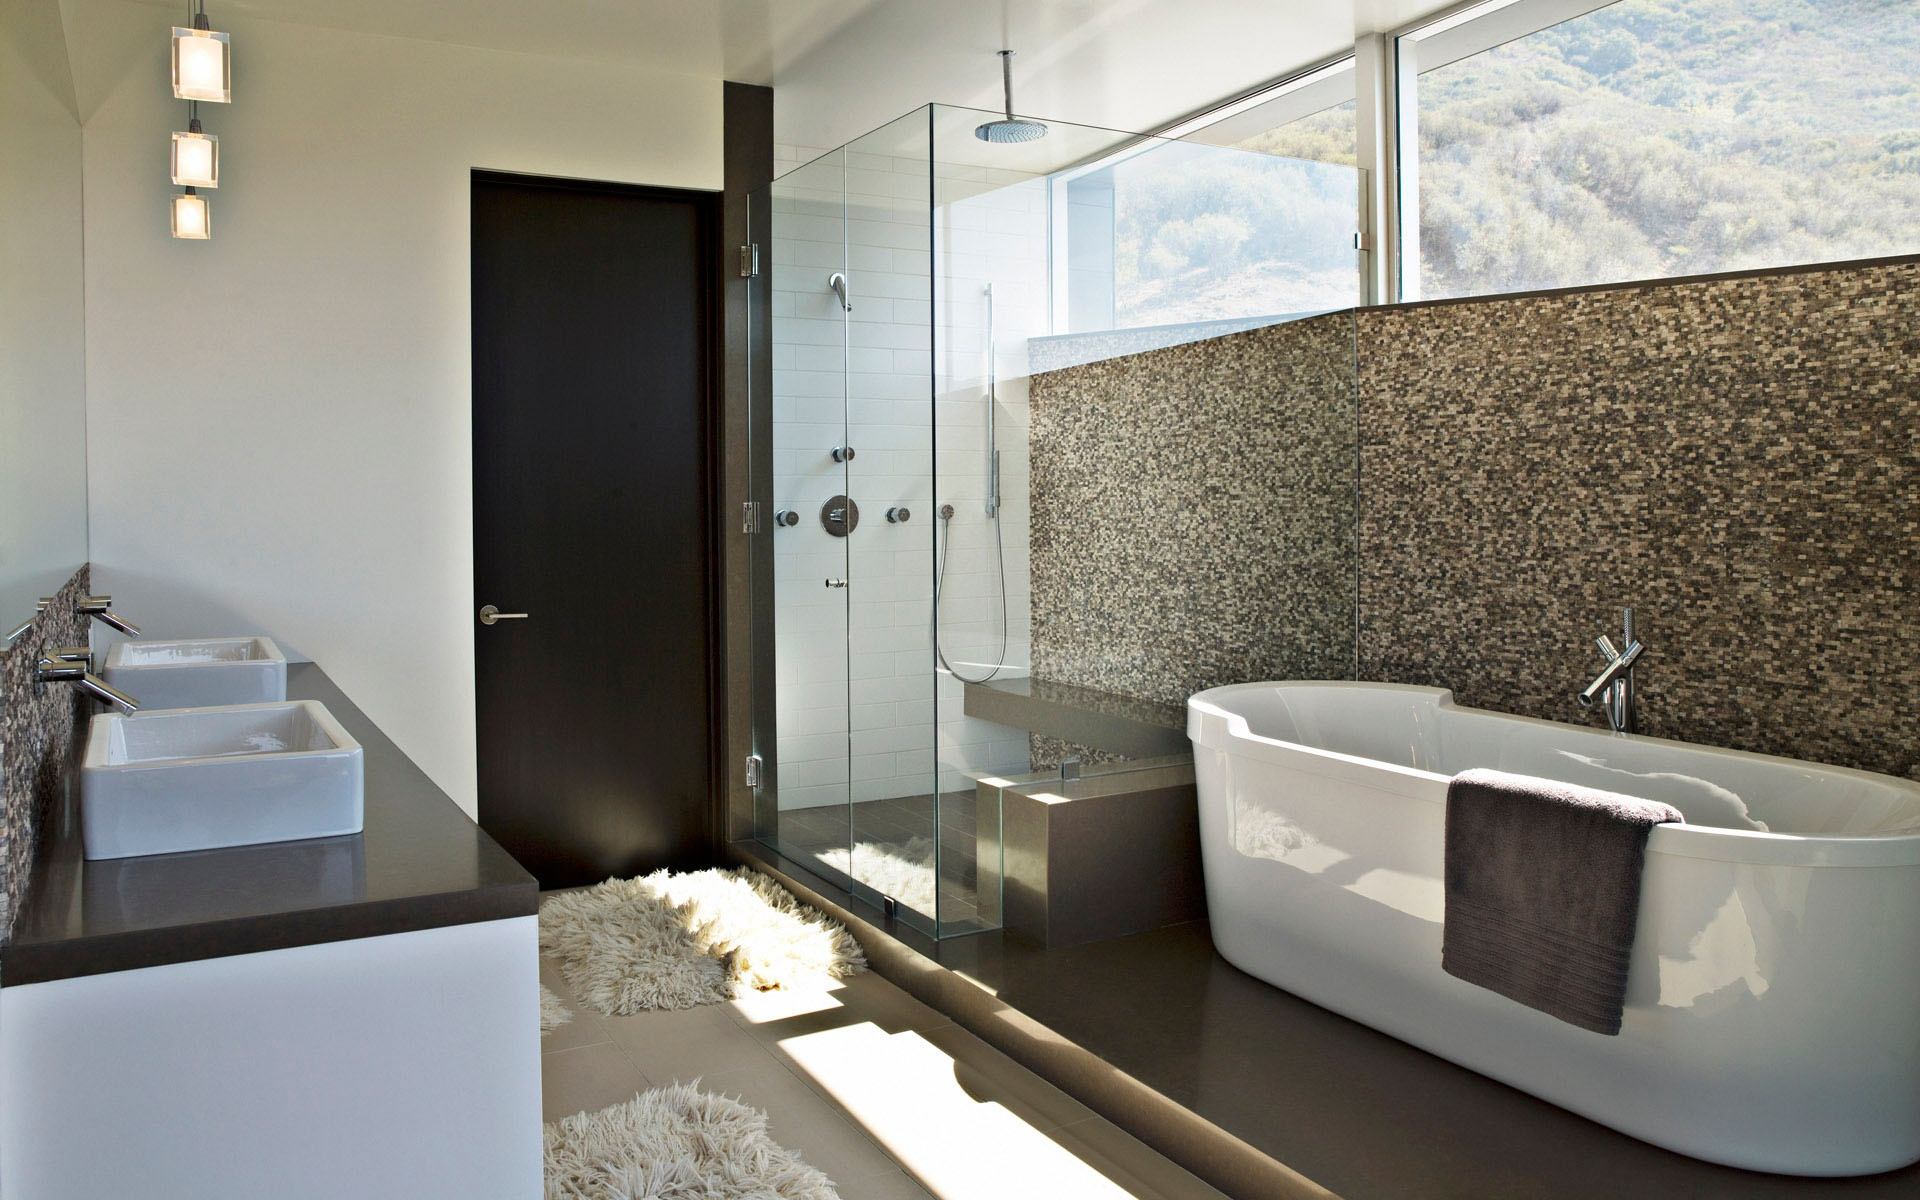 ... Bathroom Design Bath Design1920 X 1200 572 Kb  ...